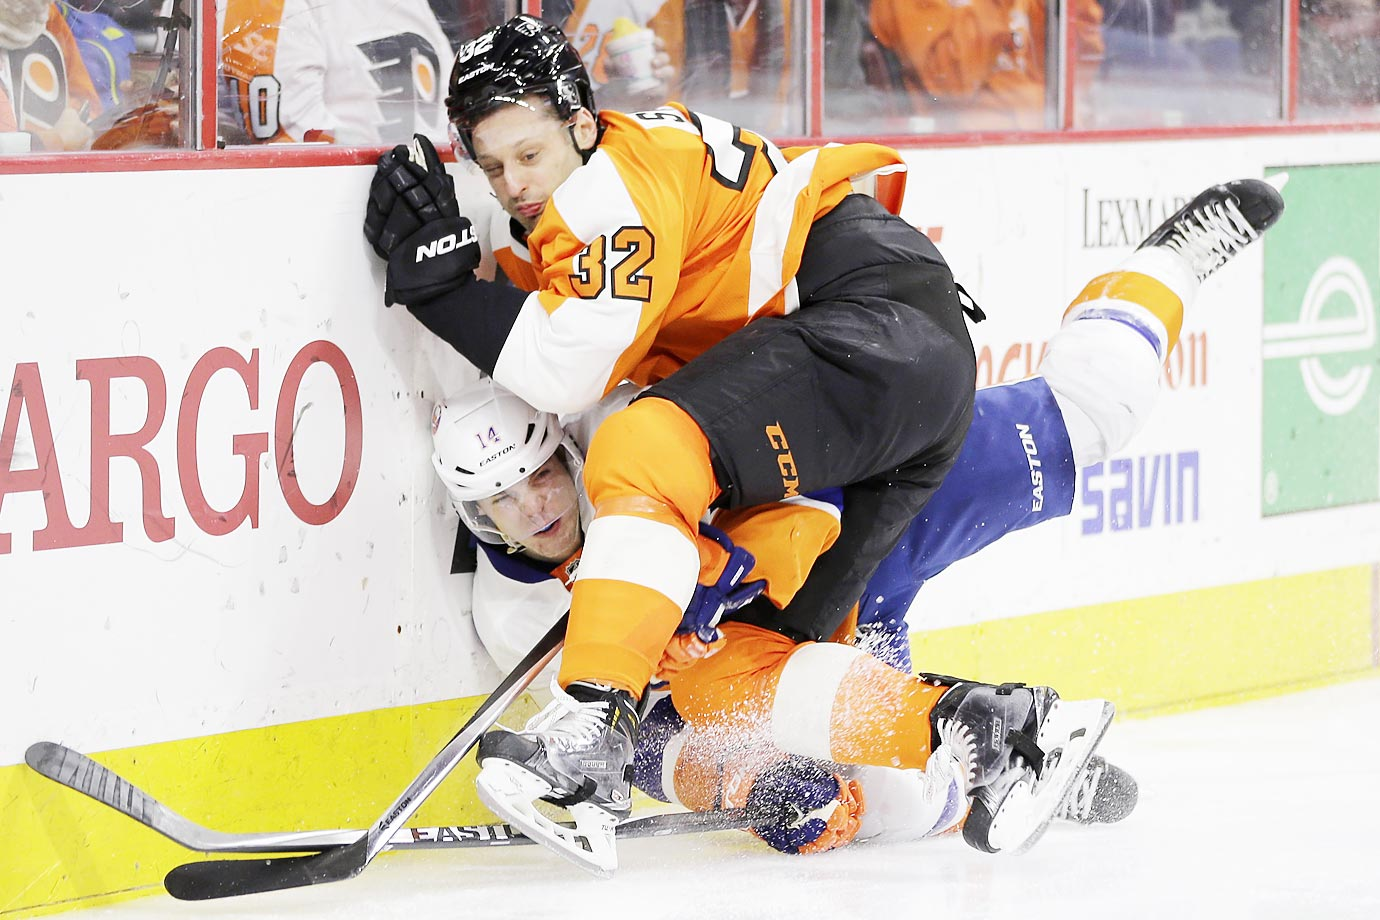 Philadelphia Flyers' Mark Streit (32) collides with New York Islanders' Thomas Hickey during their game in Philadelphia. New York won 3-2 in a shootout.